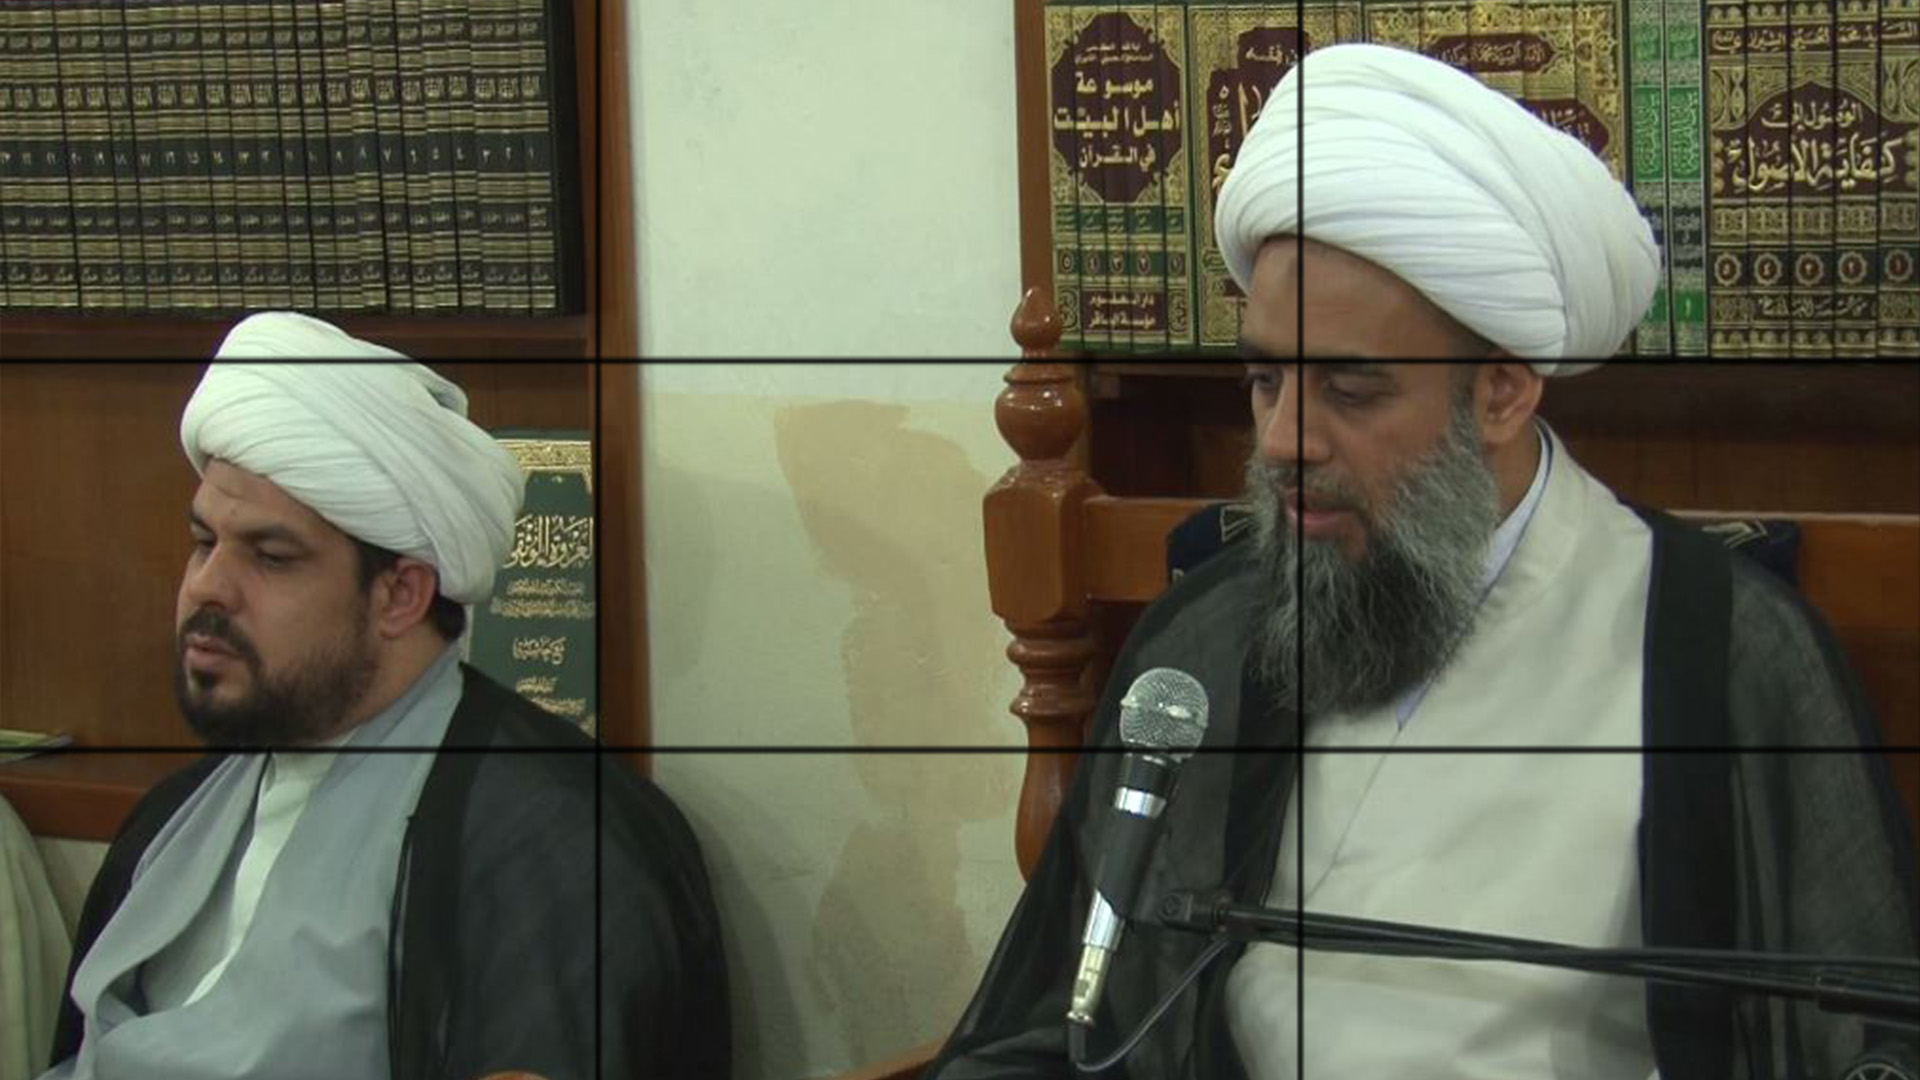 Photo of Sessions of Holy Quran's Tafseer held at the Grand Ayatollah Sayed Shirazi's office